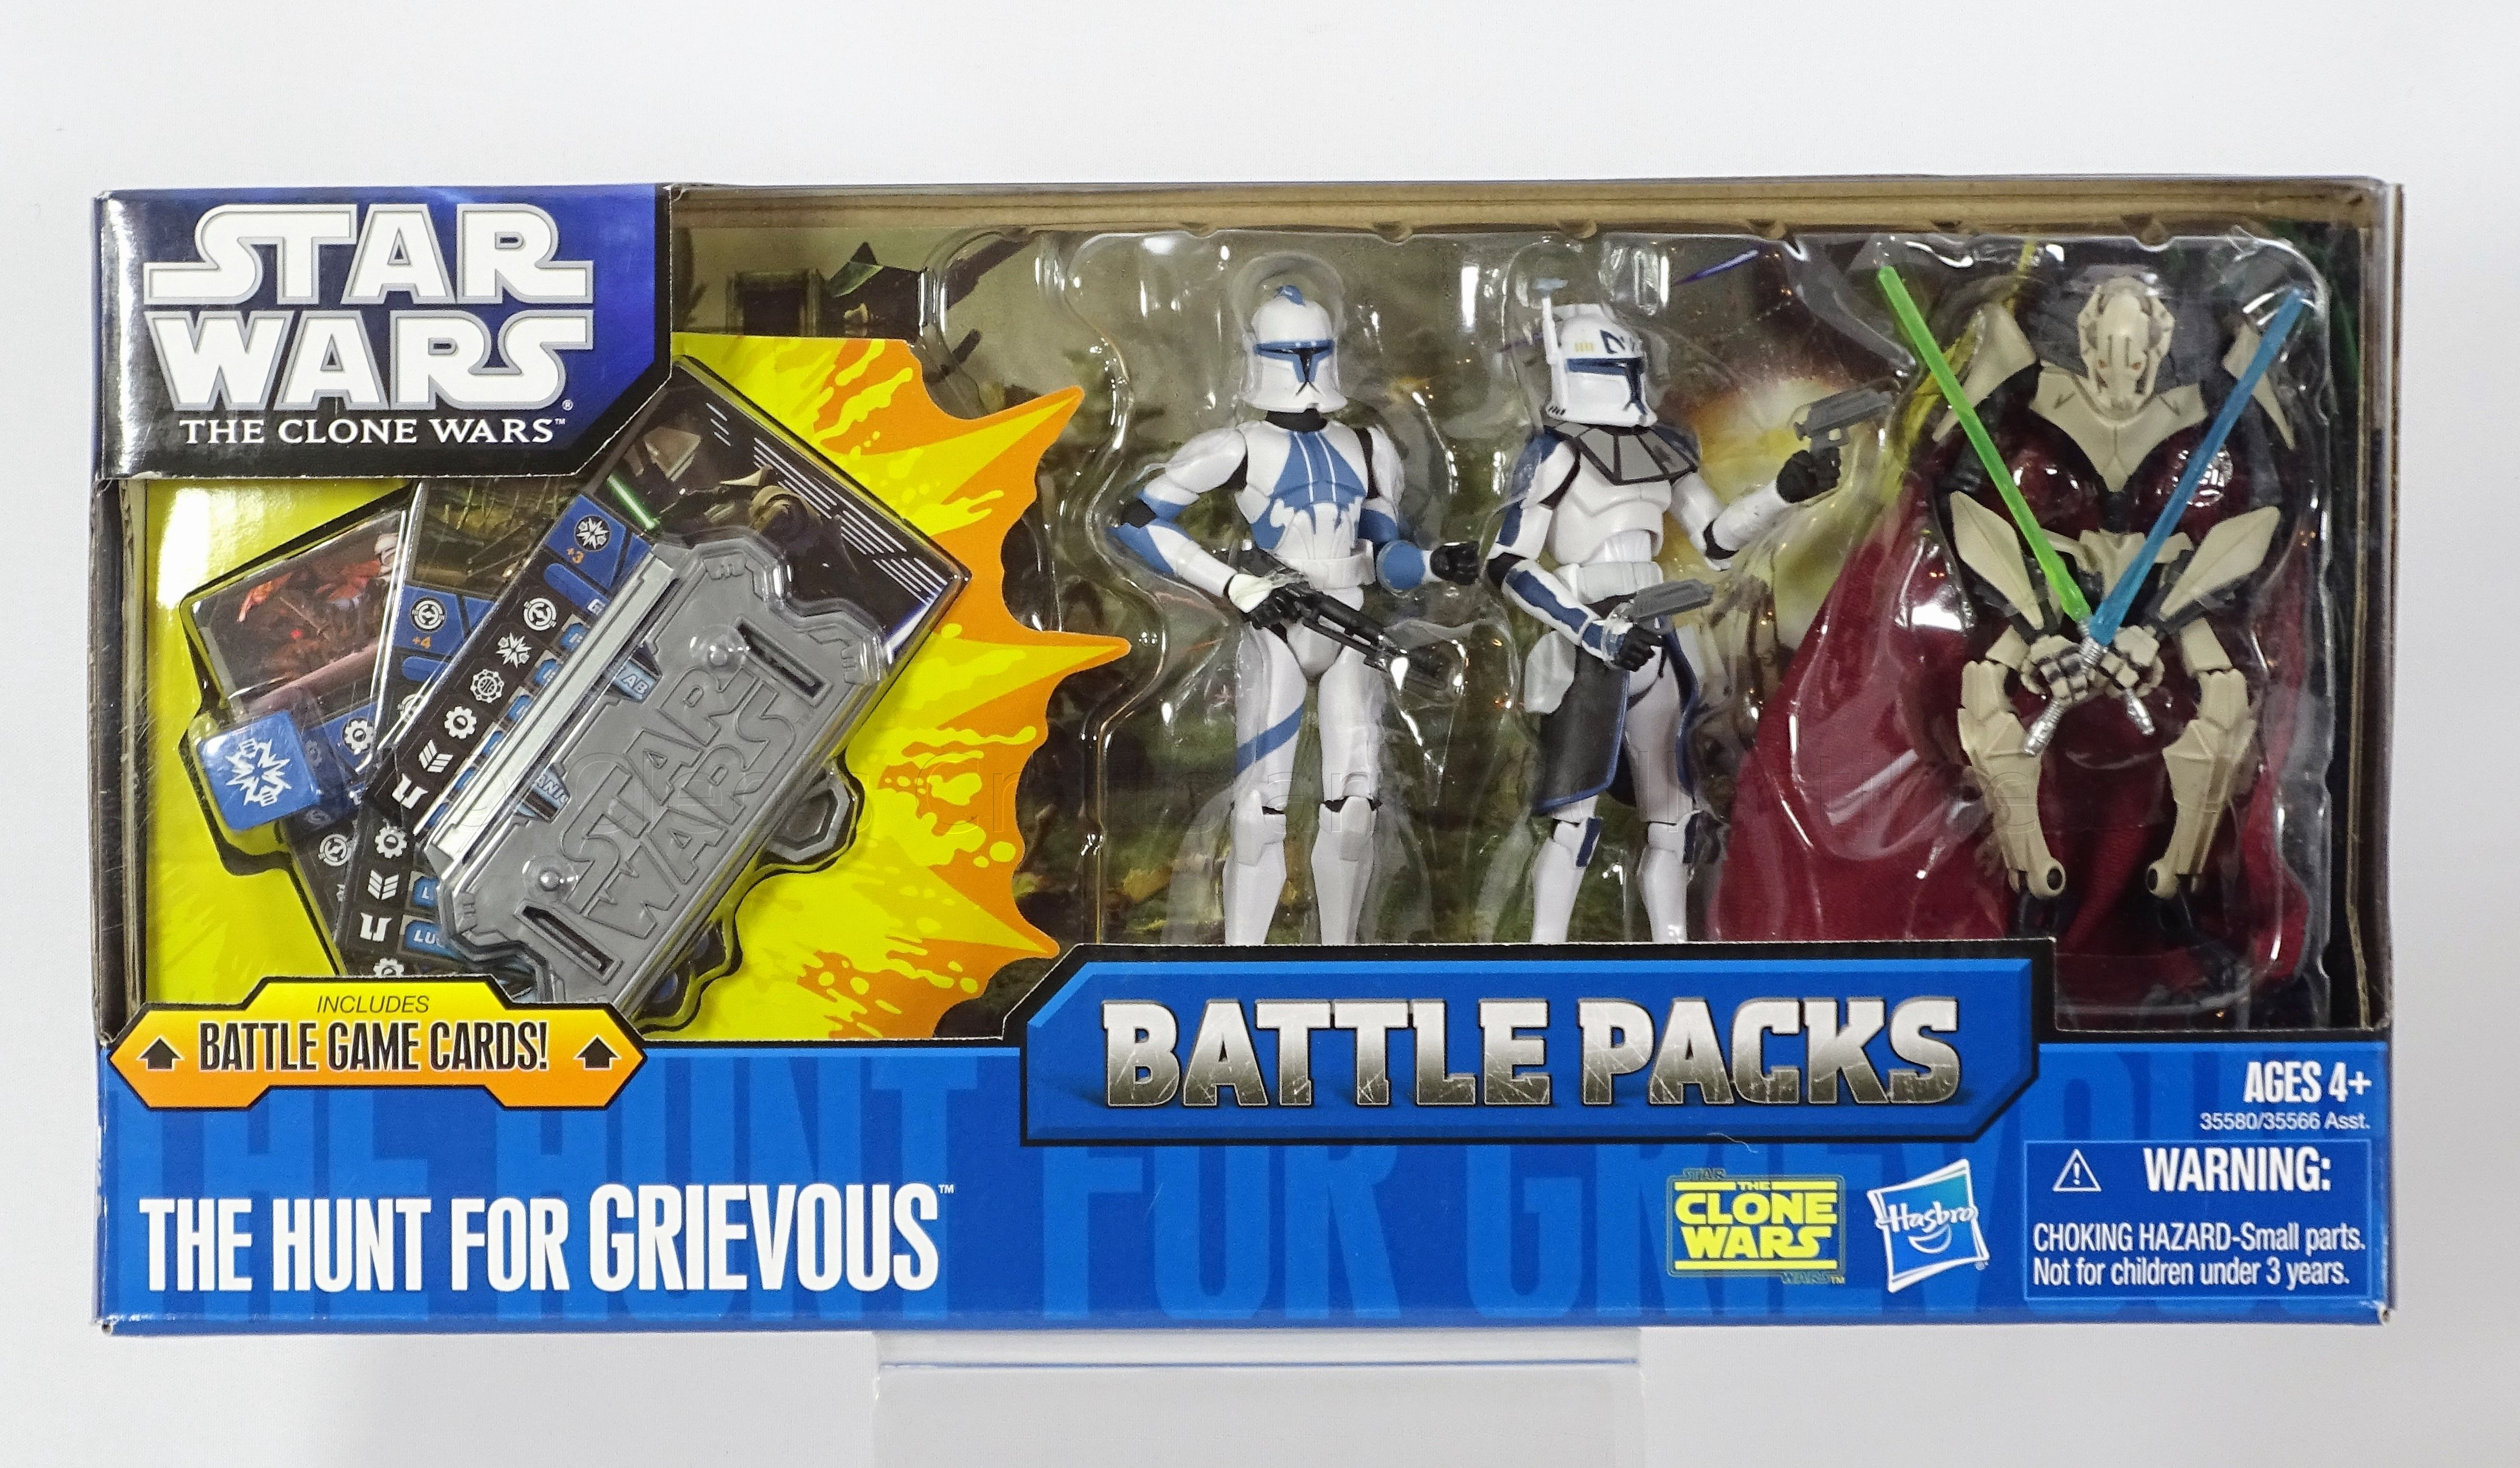 The Hunt For Grievous Battle Pack Star Wars Toys Star Wars Figures Star Wars Set